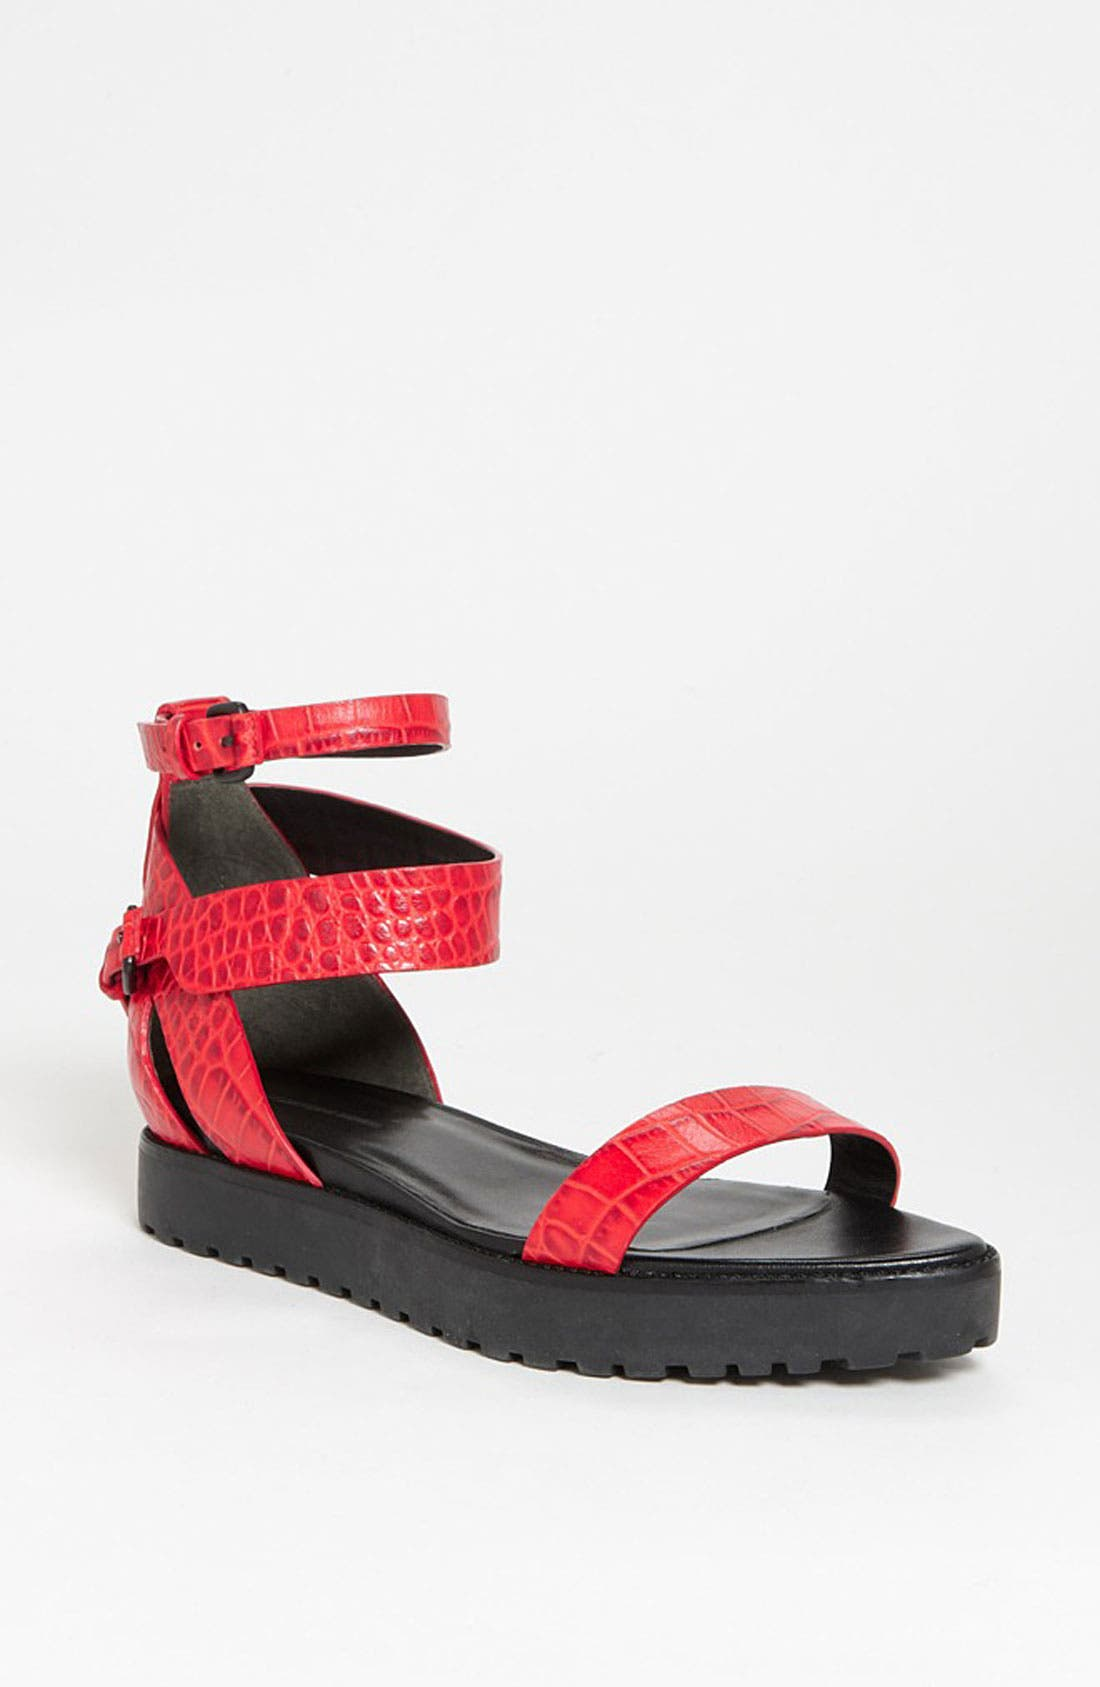 Alternate Image 1 Selected - Alexander Wang 'Jade' Sandal